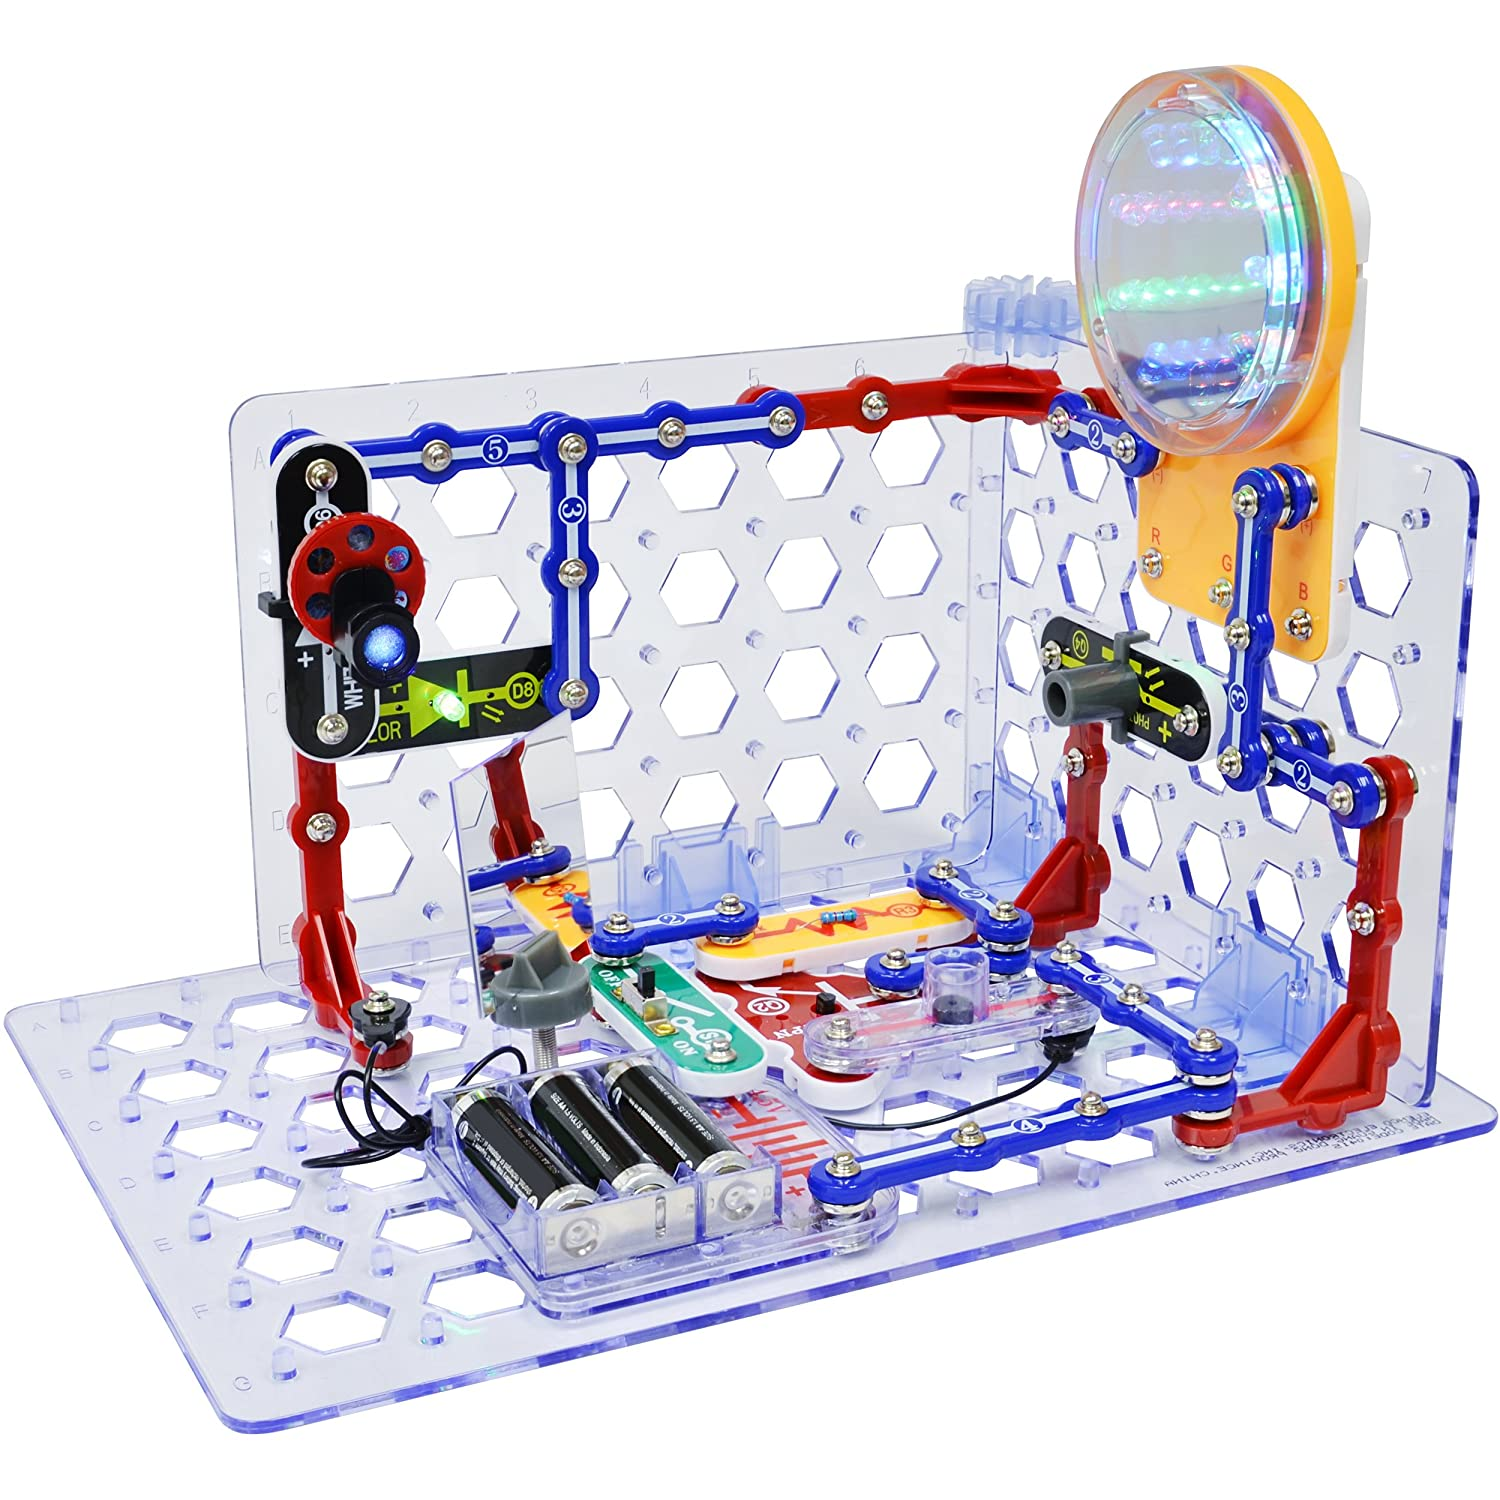 Snap Circuits Sc 3di 3d Illumination Electronics Discovery Kit New Motion Scm165 For 2016 Motorcycles Amazon Canada